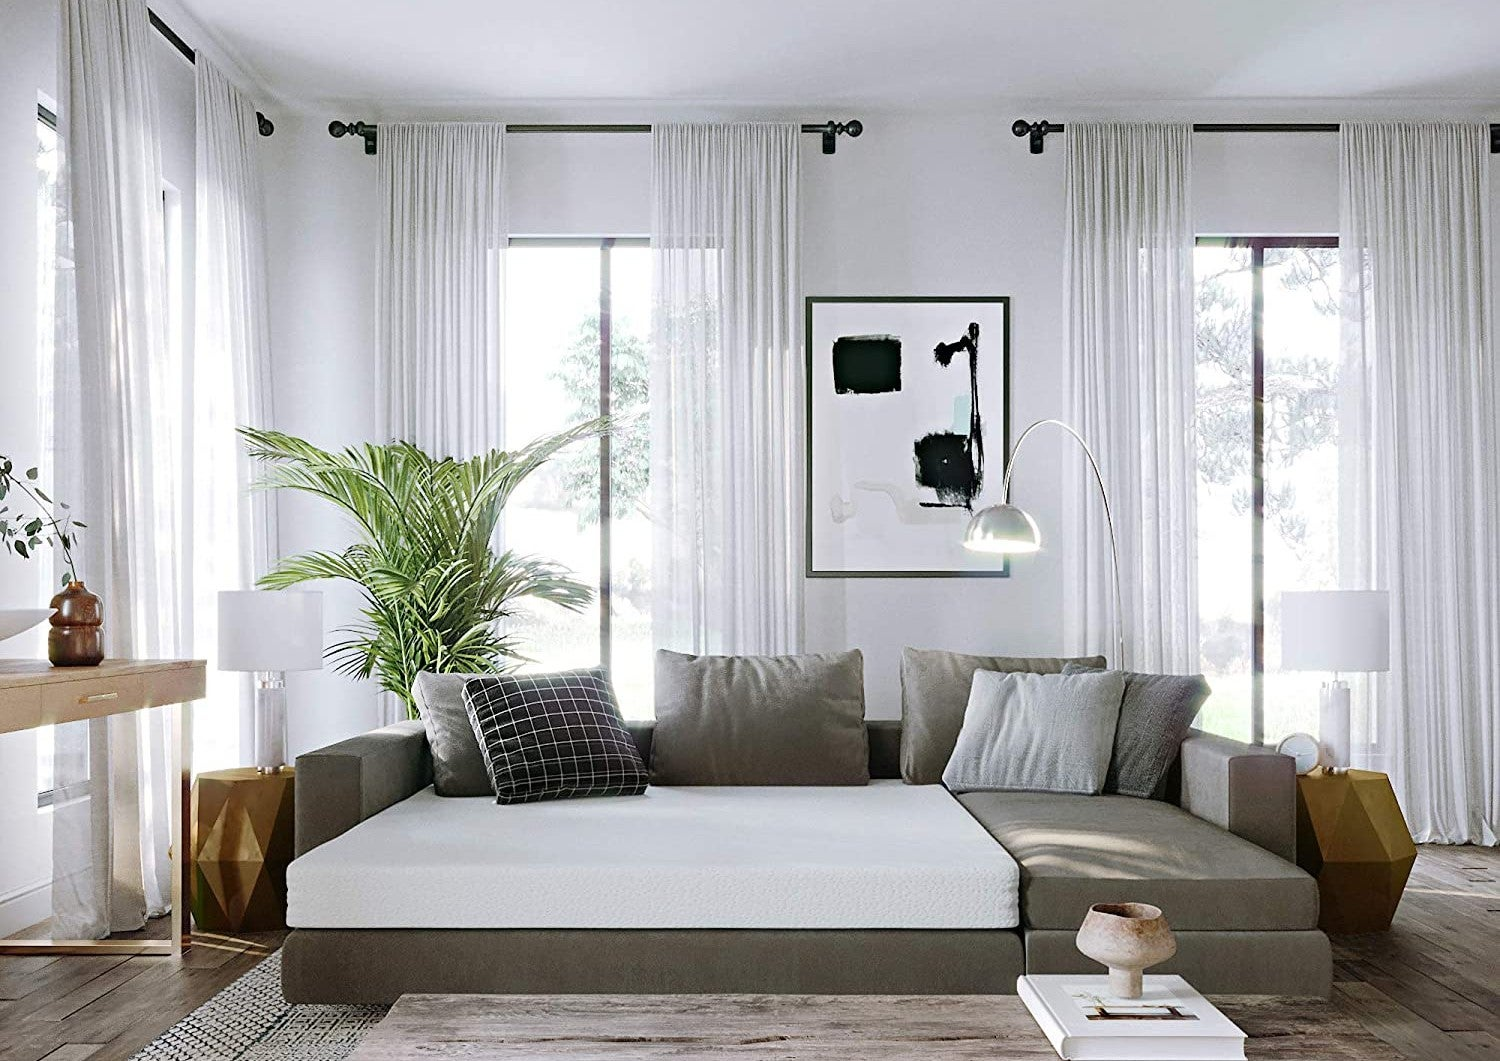 the best sofa bed mattresses for a